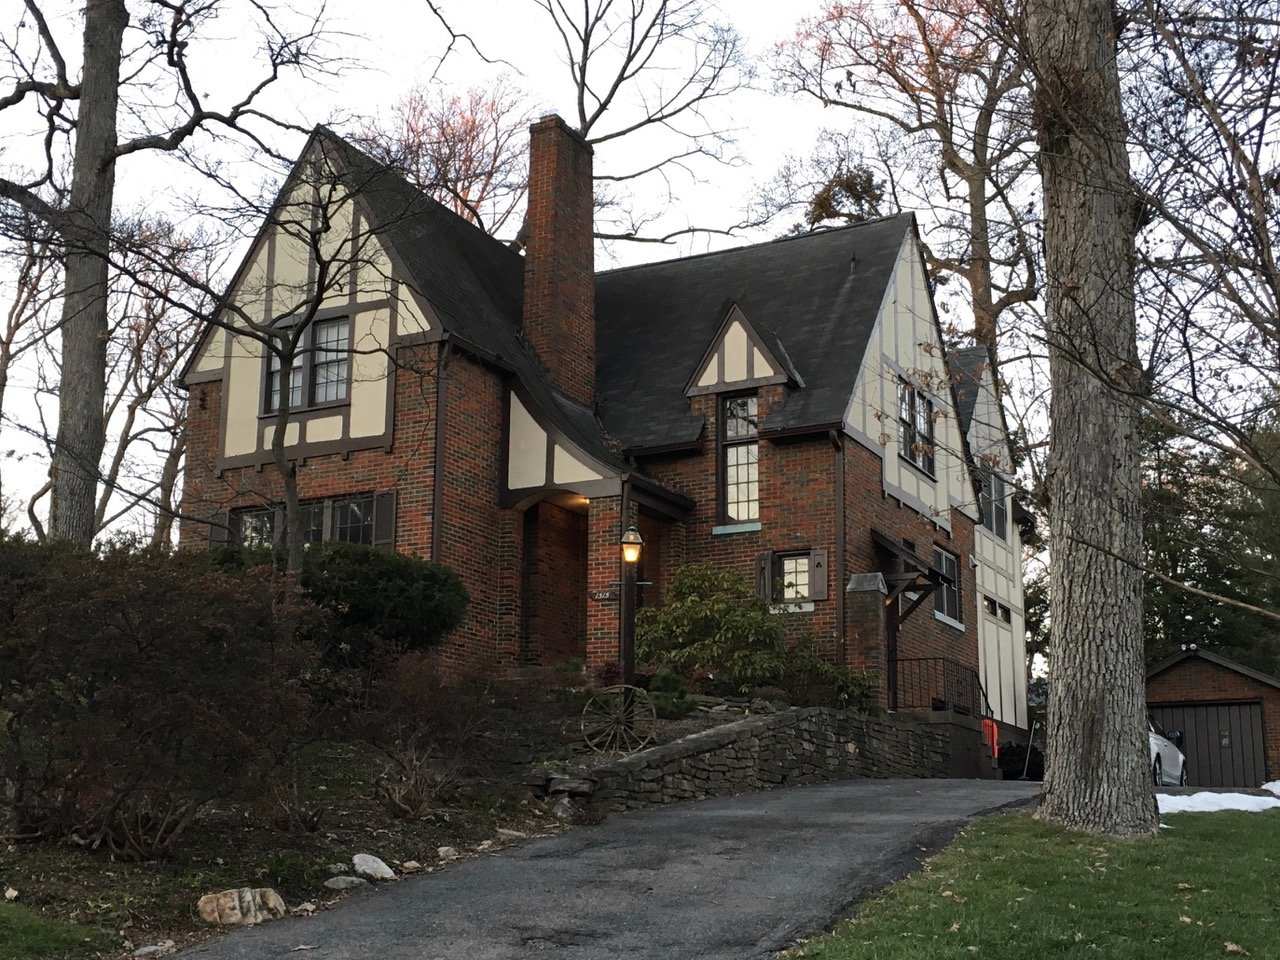 """A Sears """"Elmhurst"""" kit house in the Forest Hills neighborhood of Northwest, D.C. (Catarina Bannier)"""